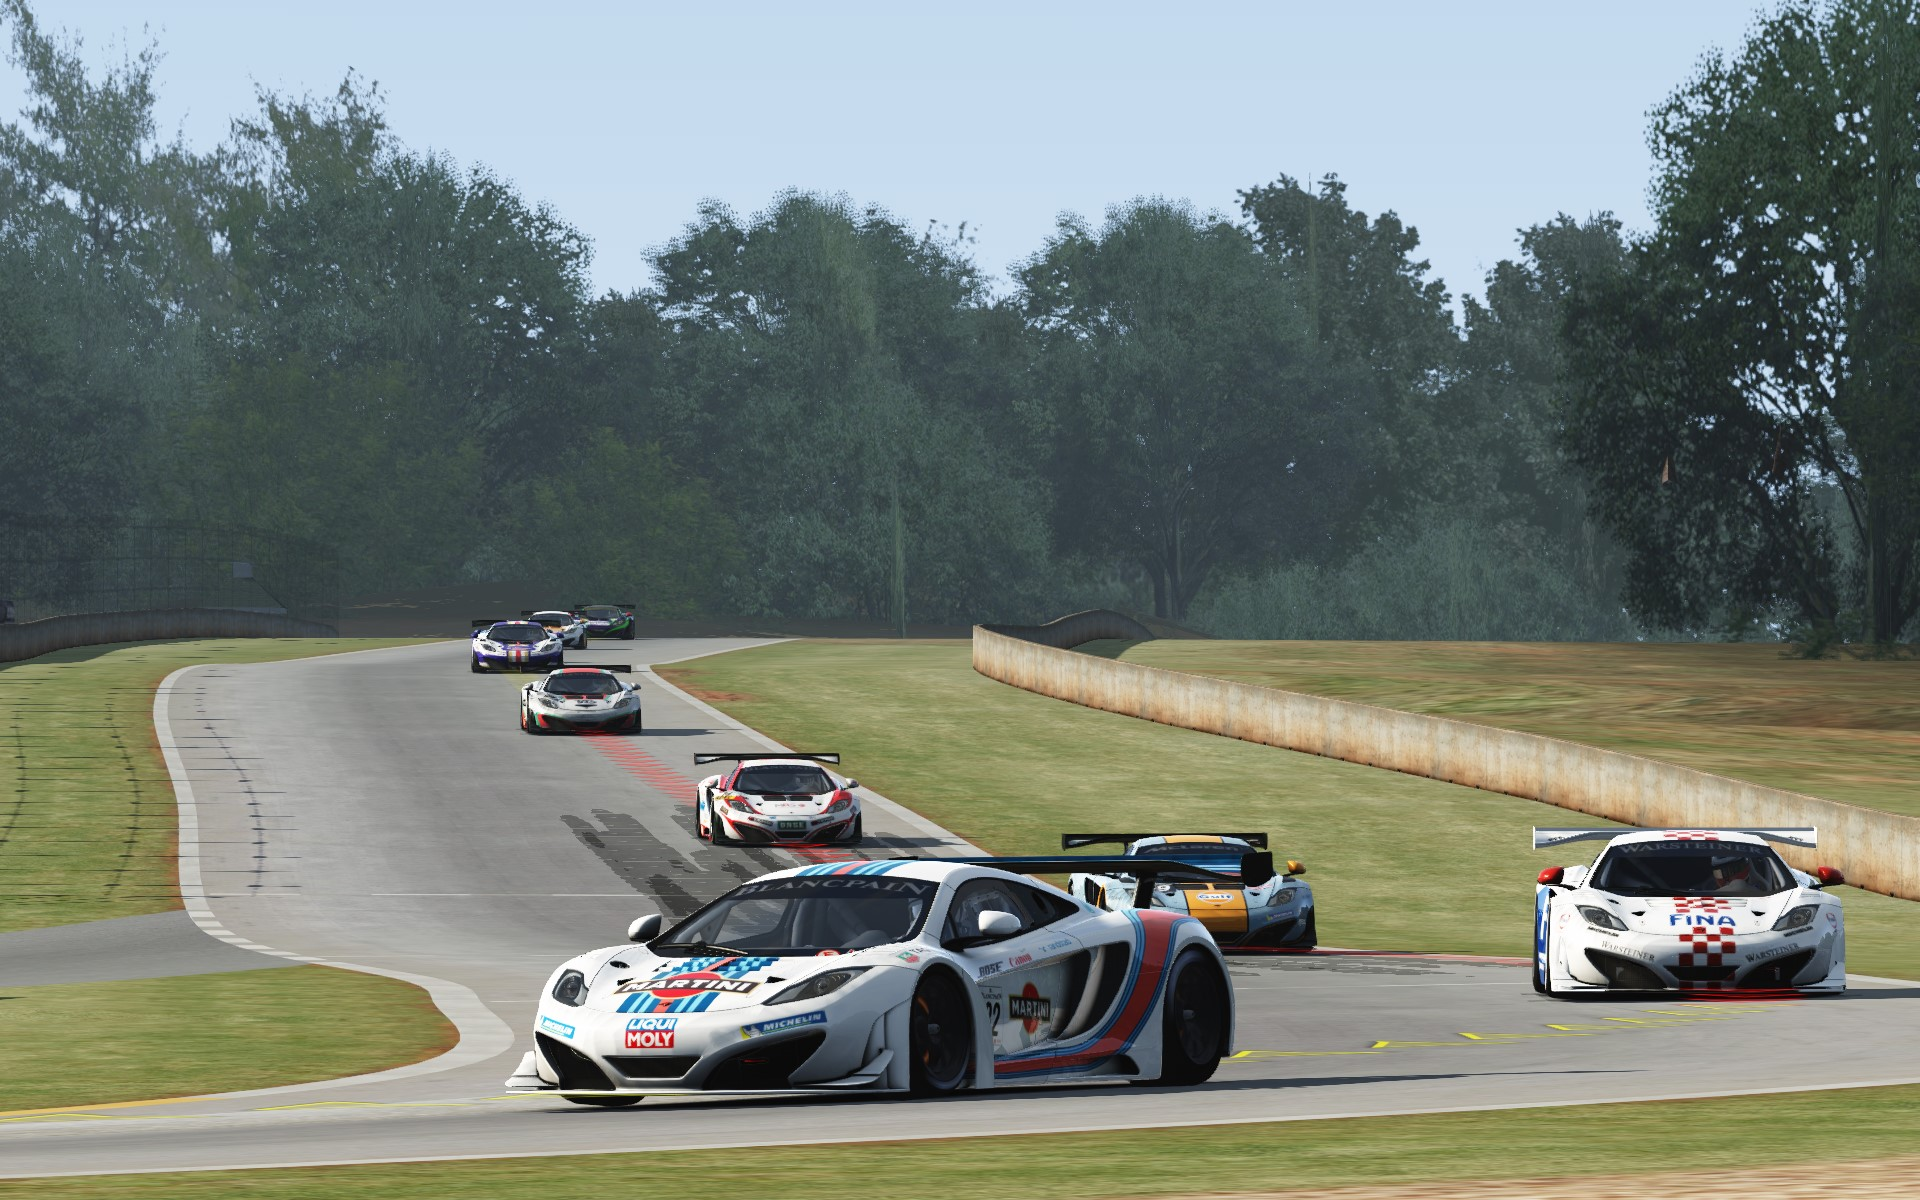 Screenshot_mclaren_mp412c_gt3_road atlanta_10-8-115-13-59-33.jpg